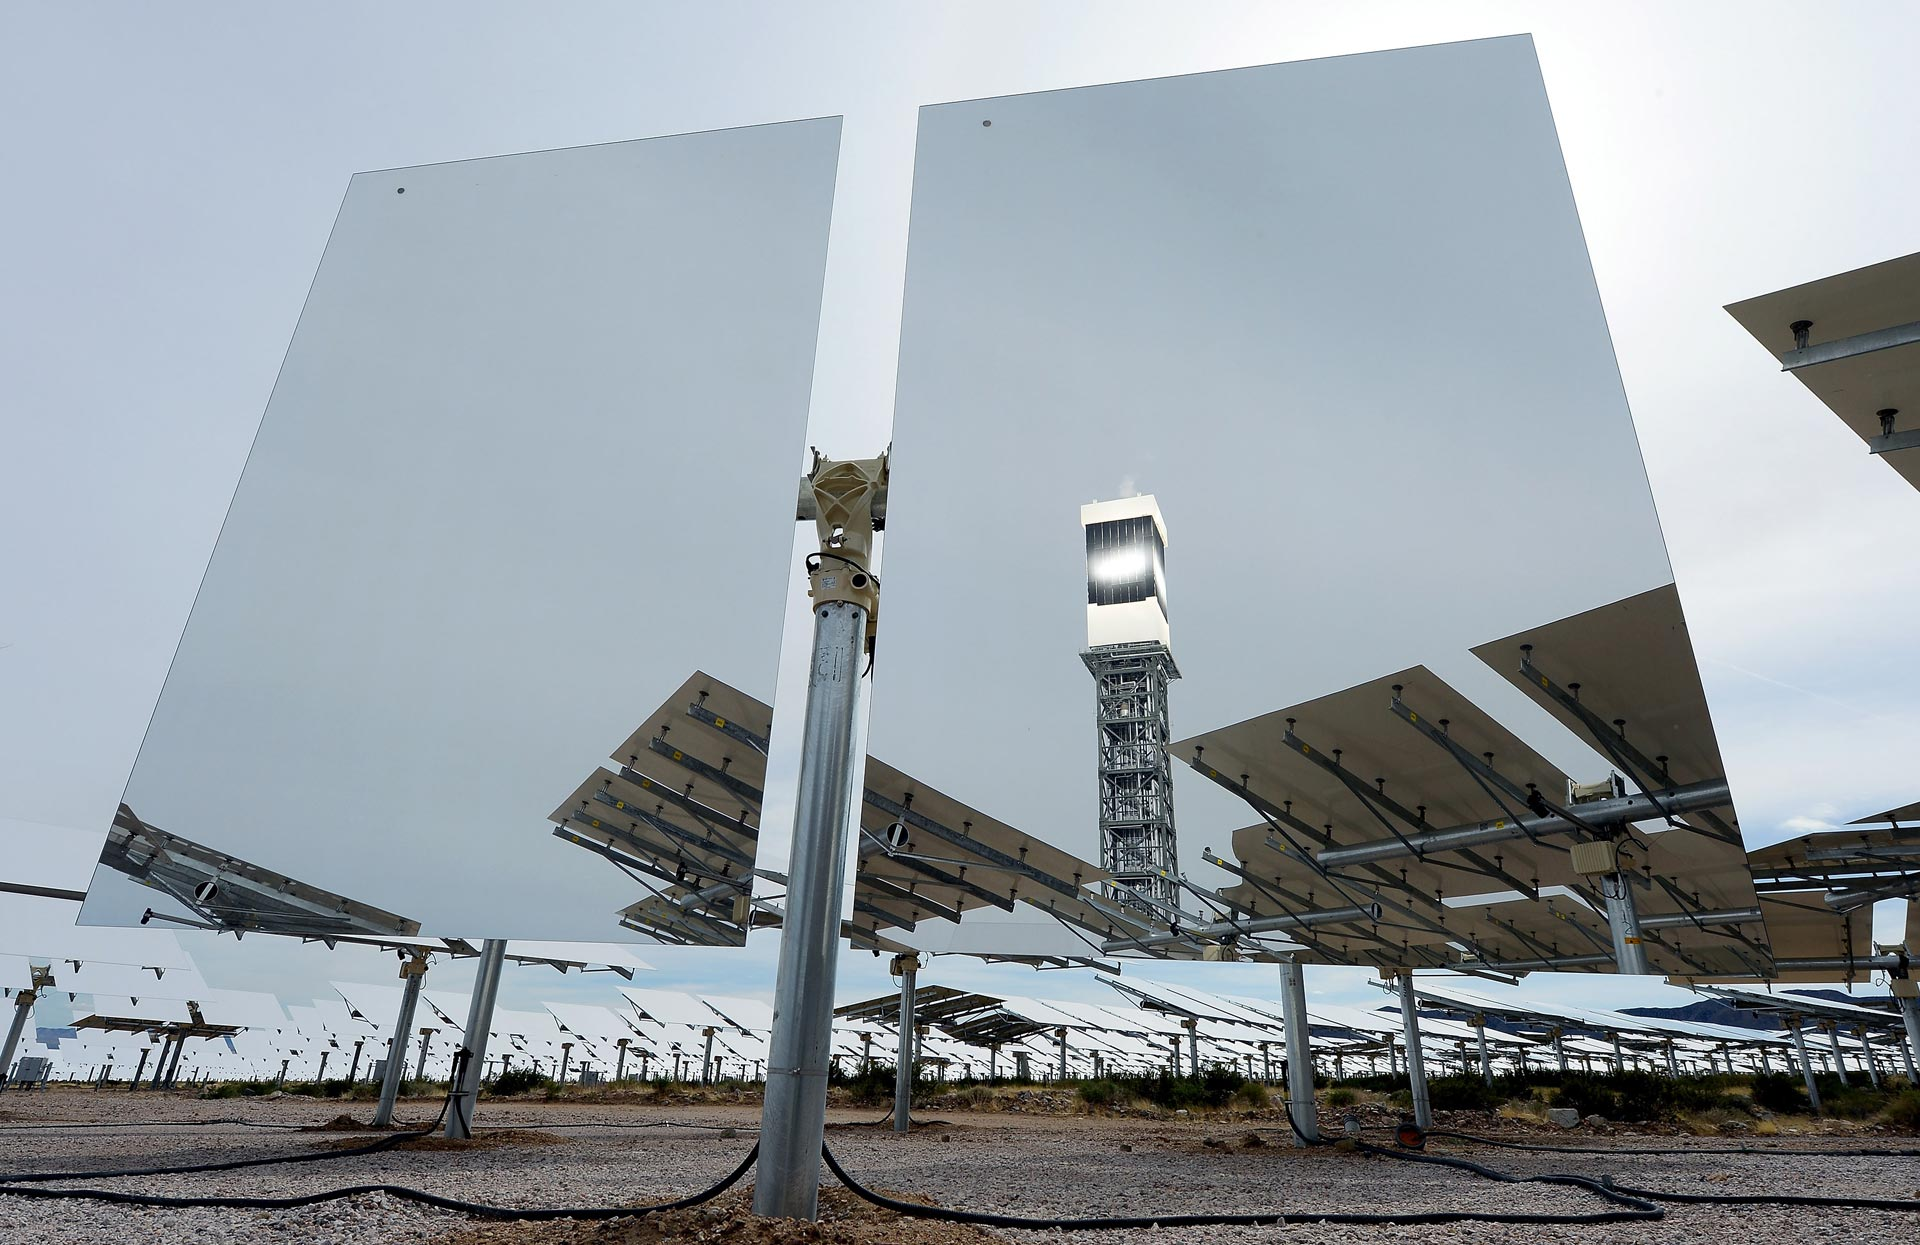 A solar receiver and boiler on top of a tower is reflected in a heliostat with two mirrors at the Ivanpah Solar Electric Generating System.